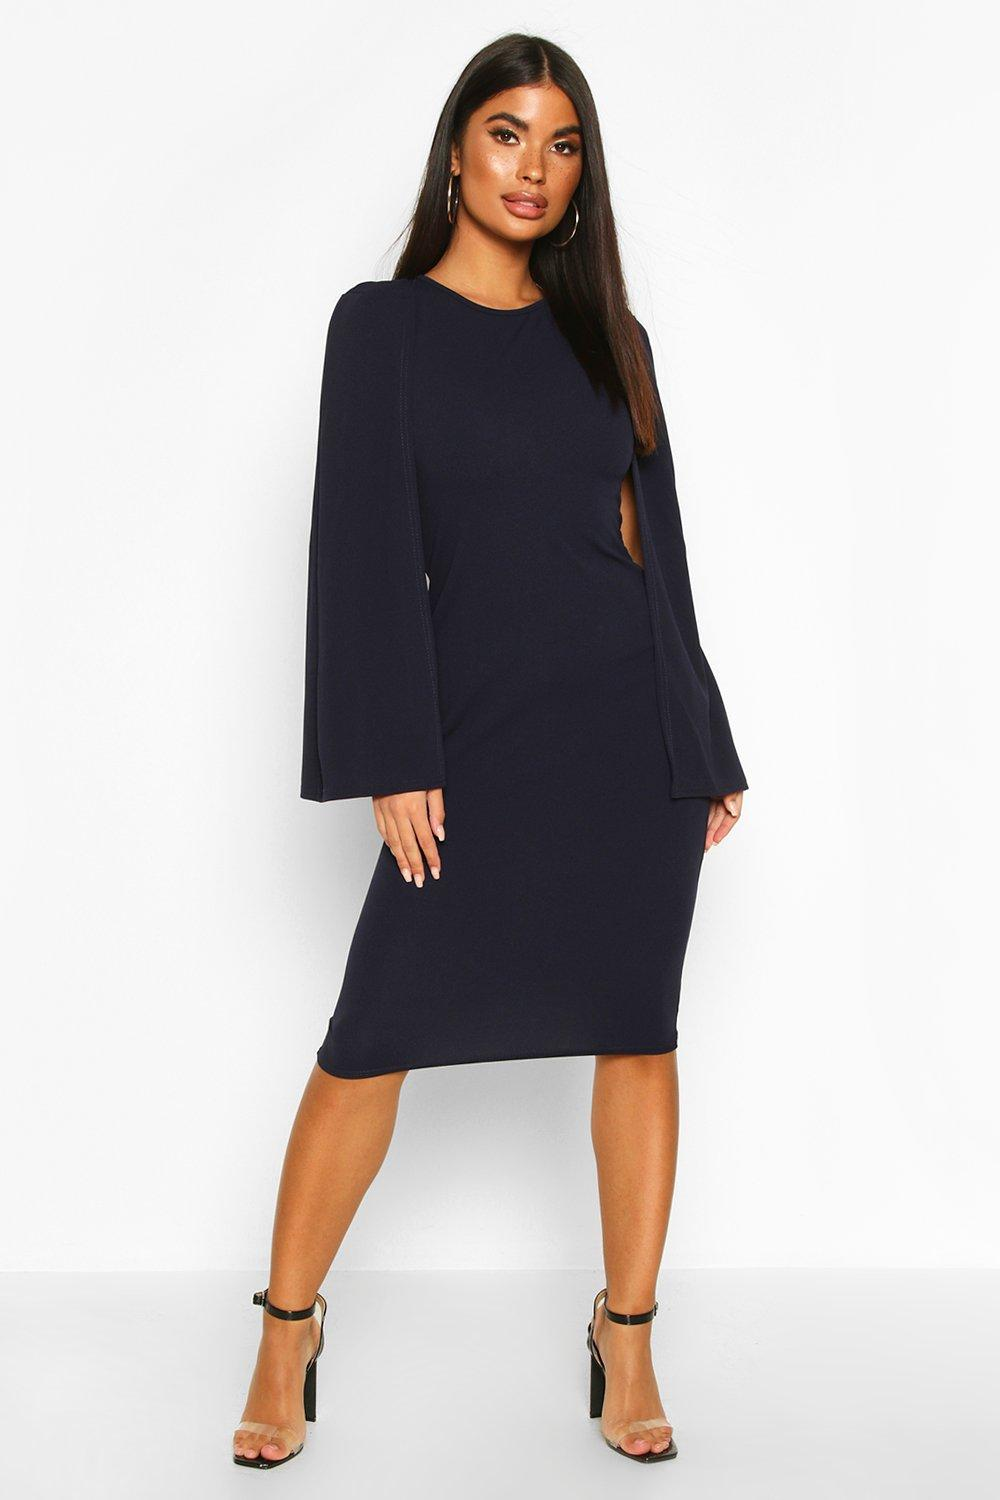 boohoo Womens Petite Cape Sleeve Midi Dress - Navy - 8, Navy